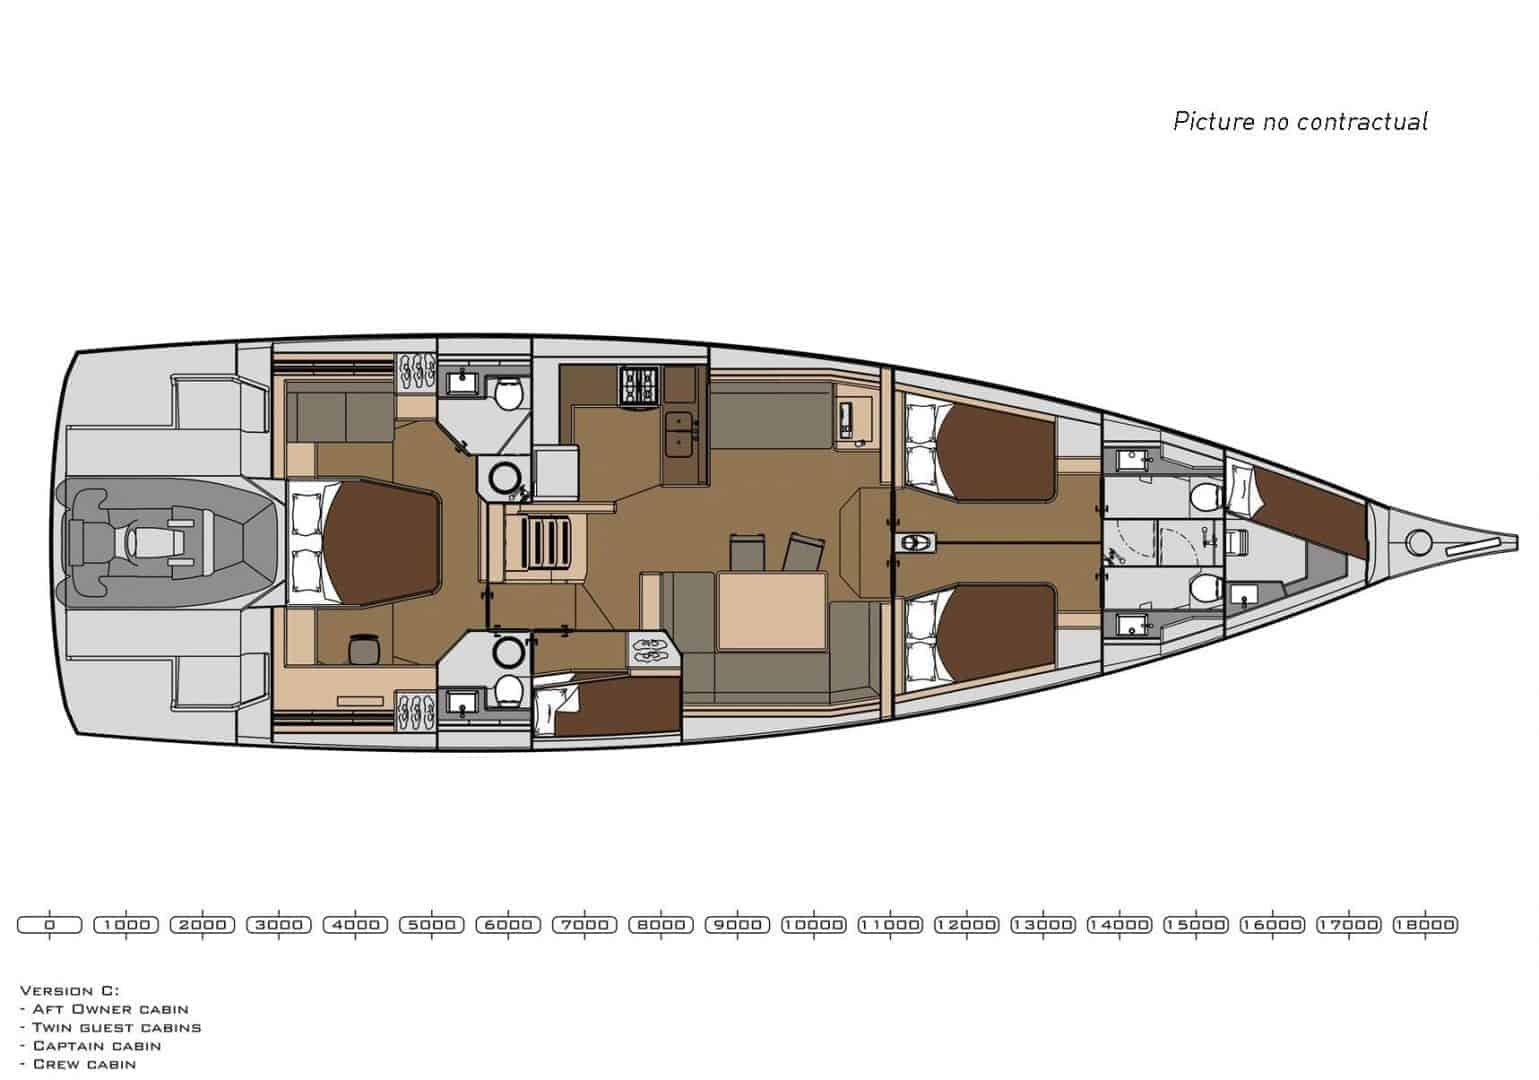 4 cabin layout plan of the Dufour Exclusive 63